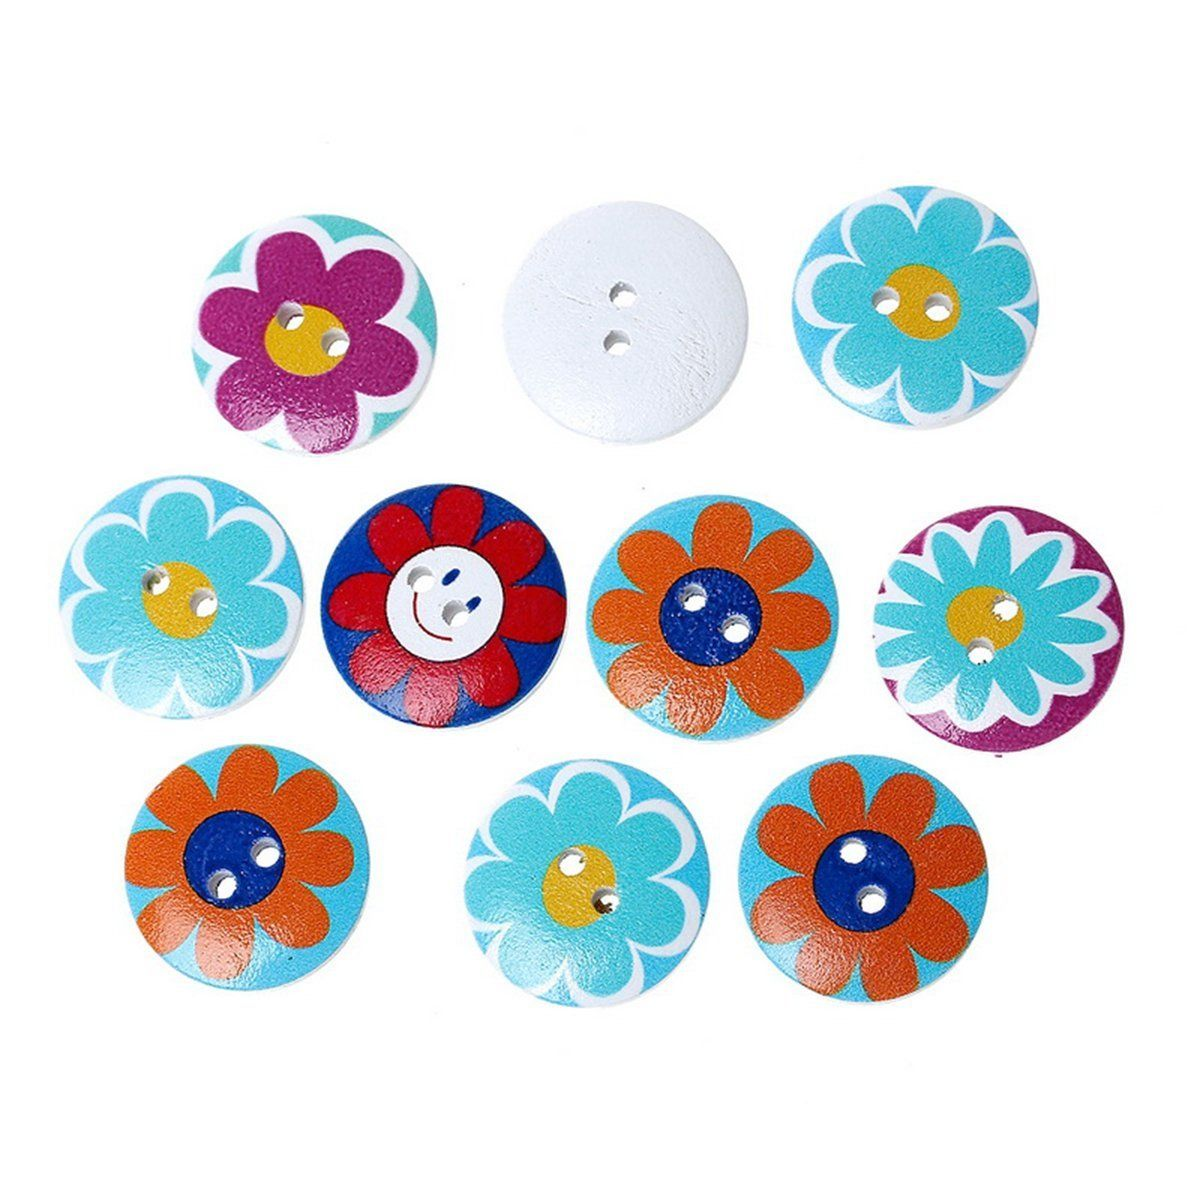 HOUSWEETY 100PCs Wooden Buttons Mixed Color Flower Round Sun 2-hole Sewing Scrapbook DIY * Want to know more, click on the image.